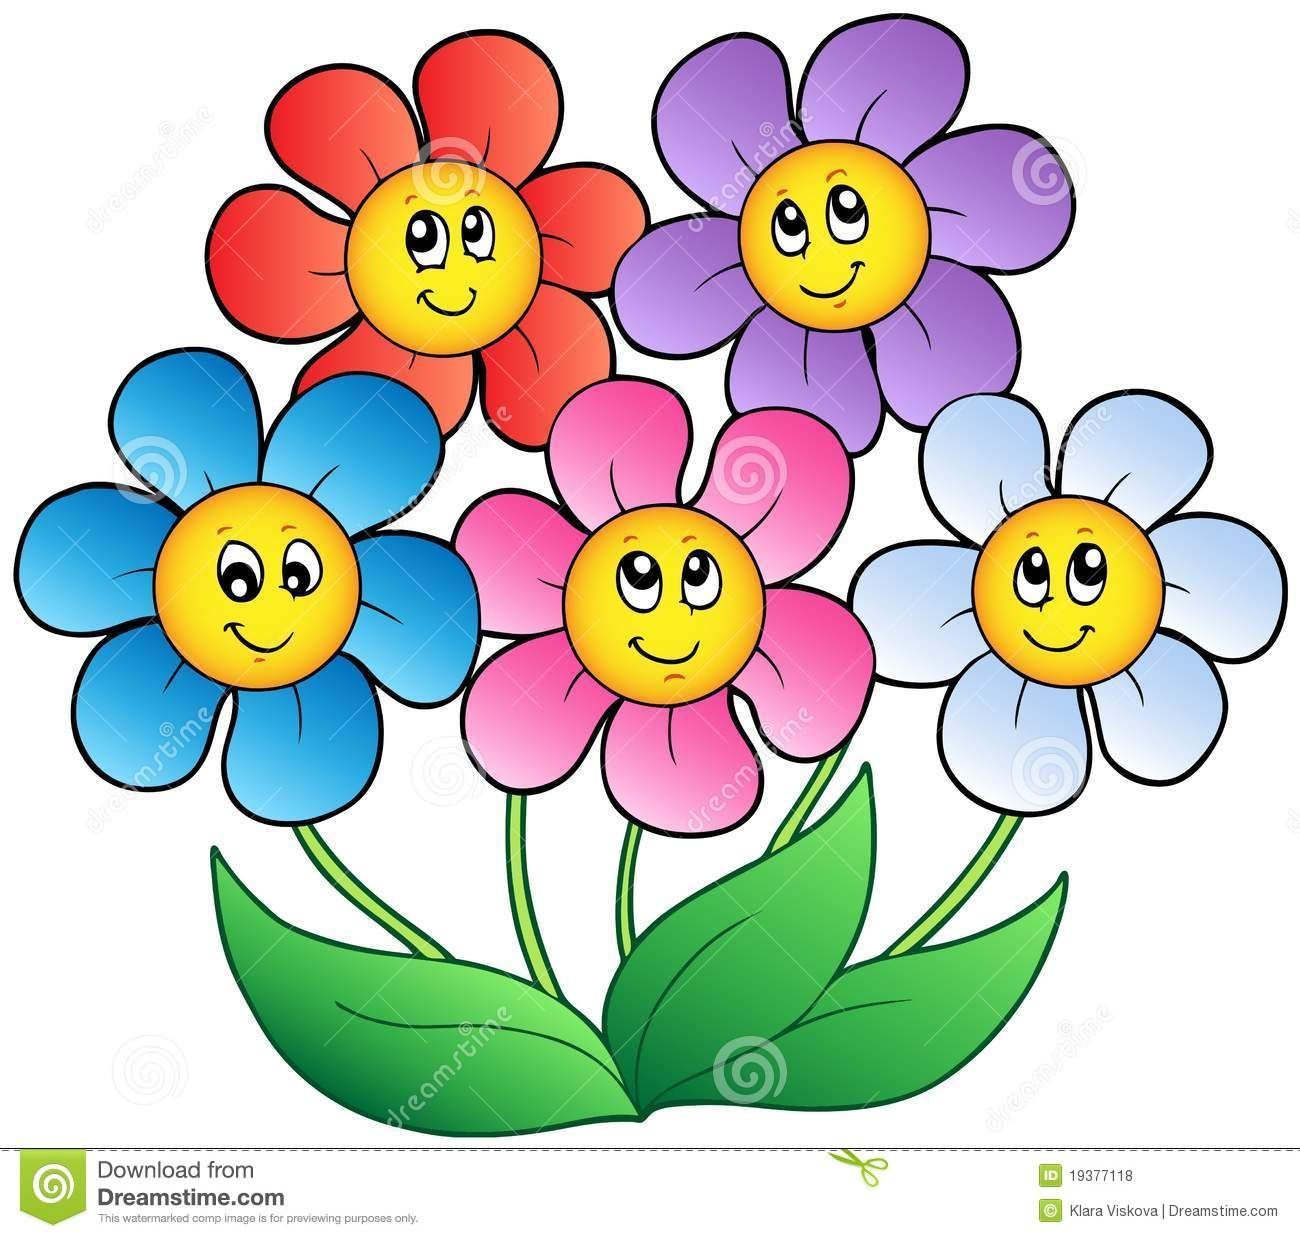 Pictures of flowers cartoon flowers pinterest cartoon and five cartoon flowers stock photo stock image clipart vector dhlflorist Image collections